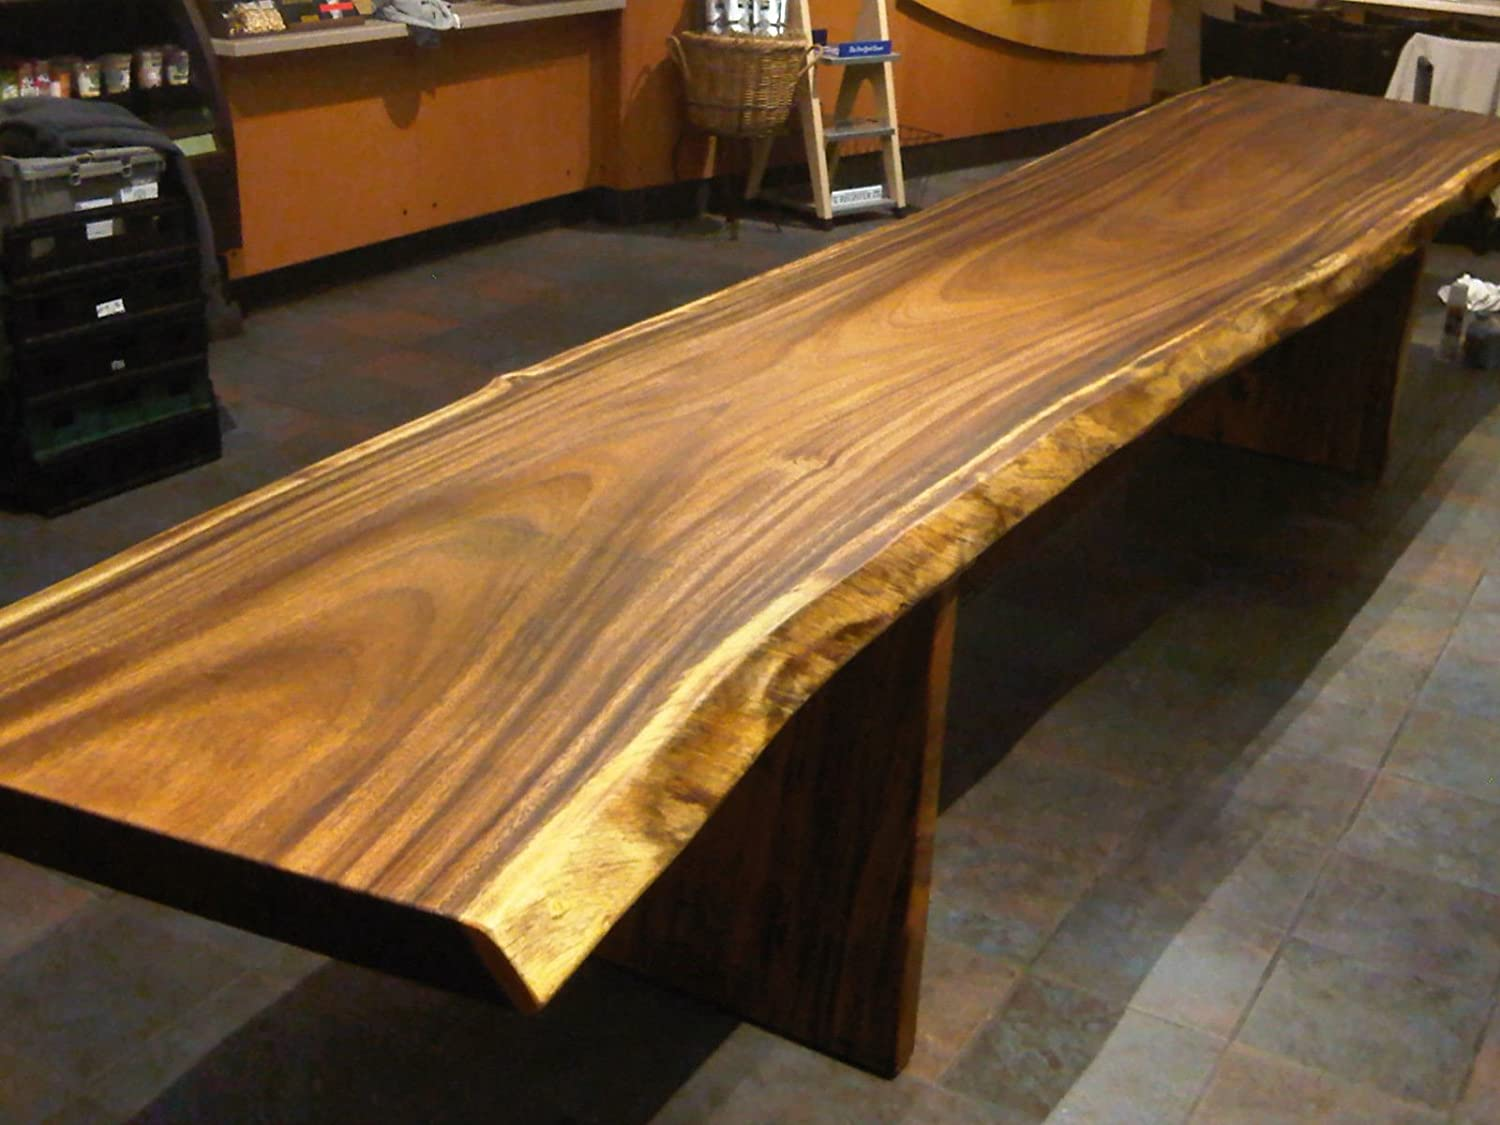 Beautiful Planed and Sanded Monkeypod Wood